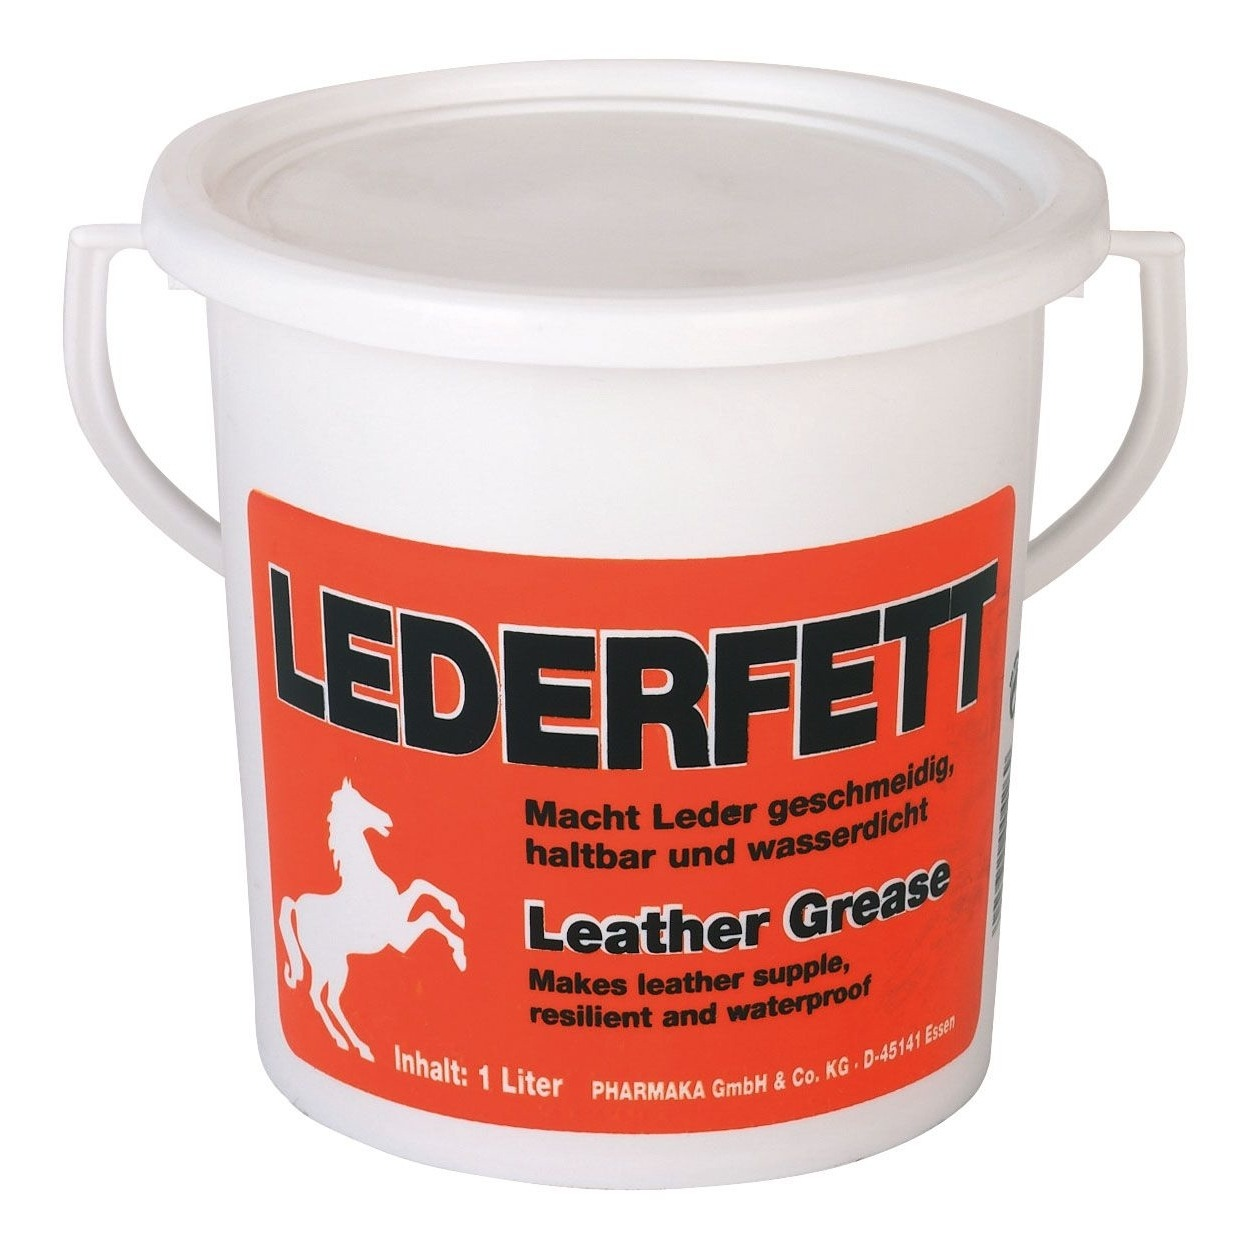 Kerbl Top Lederfett, 450 ml